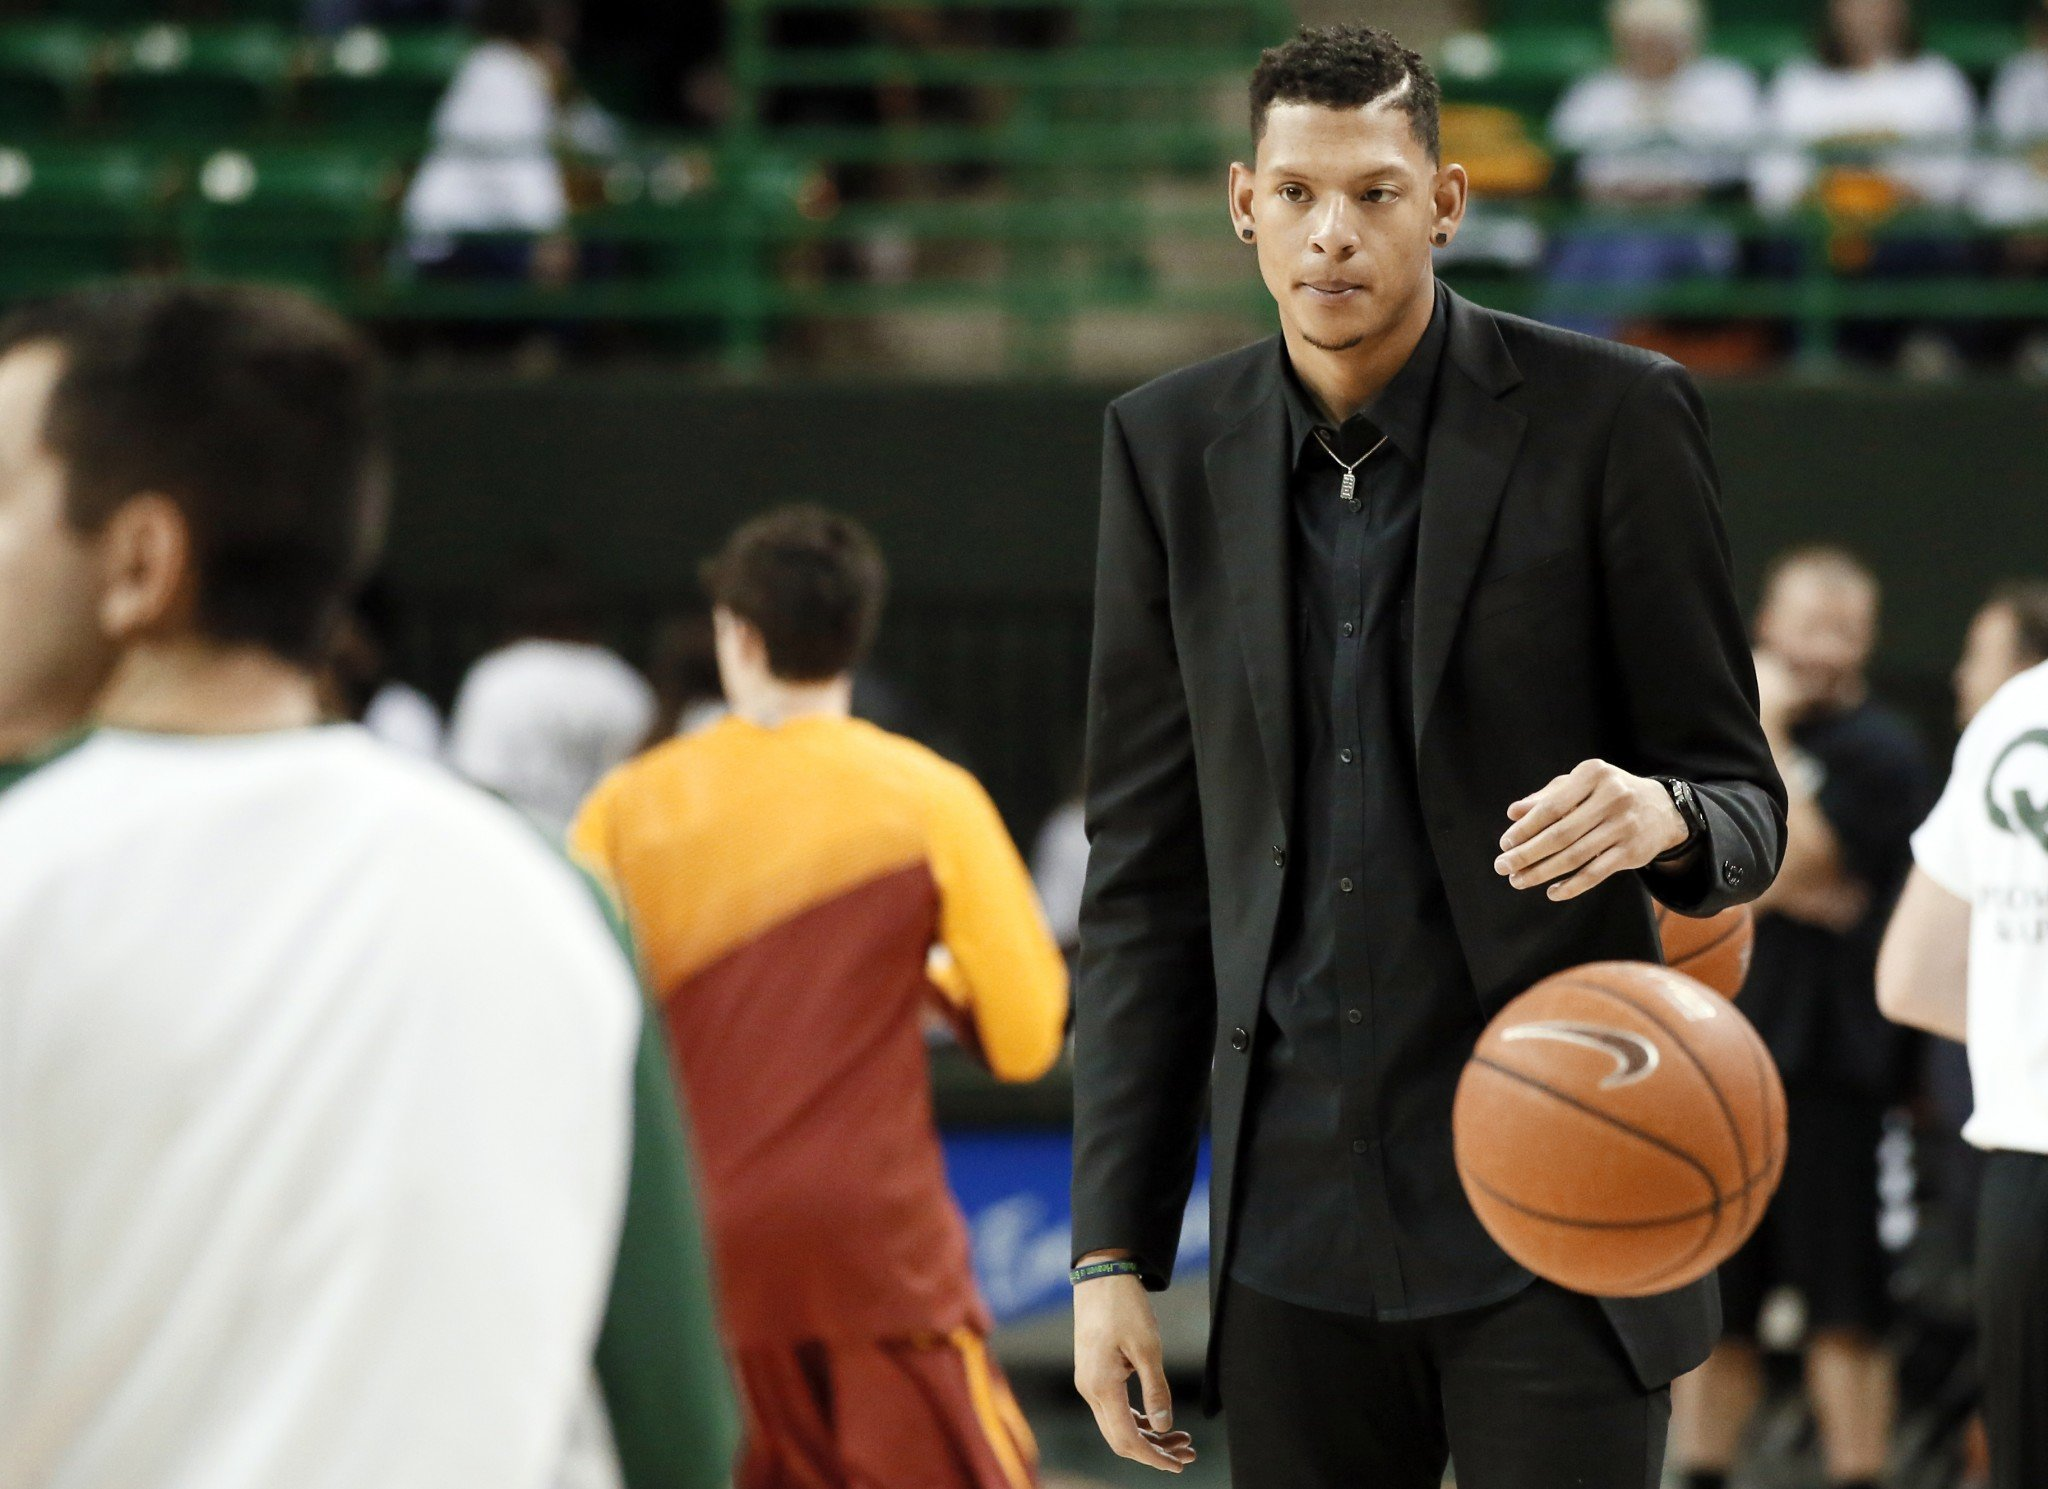 After his NBA dreams were dashed, Isaiah Austin returned to Baylor to become a student coaching assistant. Now, he's getting back on the court. (AP)